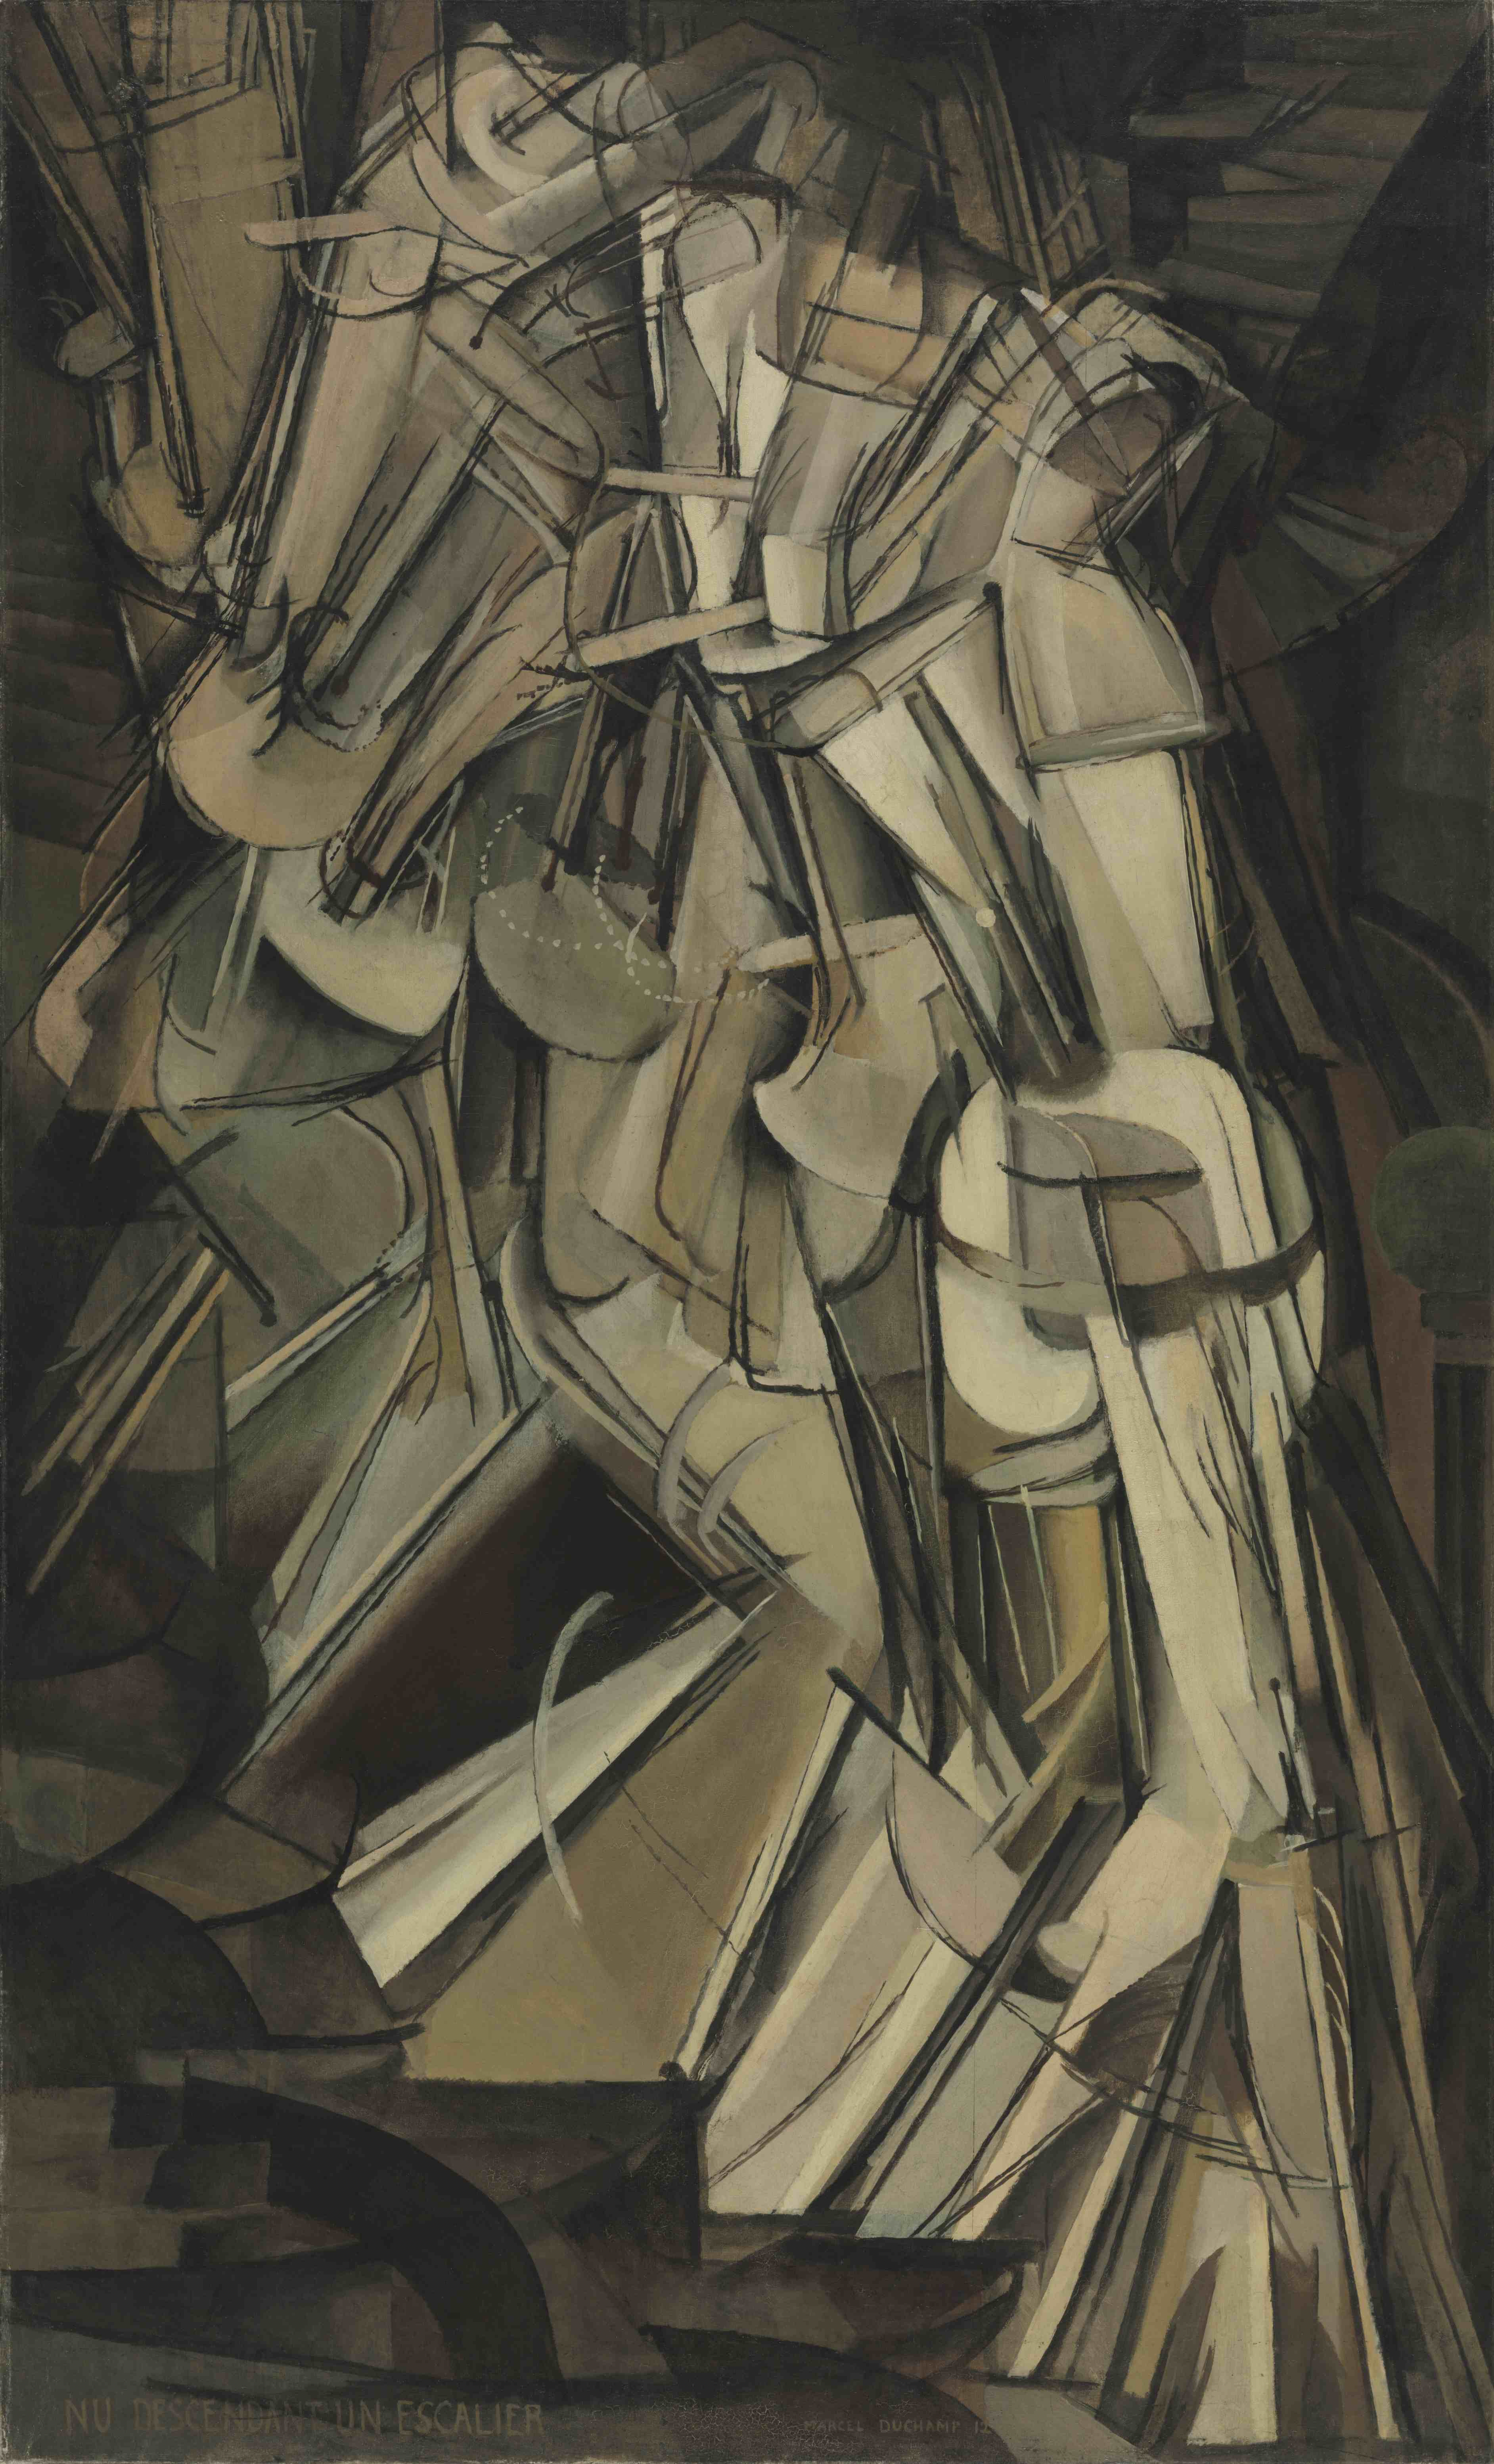 Nude Descending a Staircase, No. 2 (1912) by M...